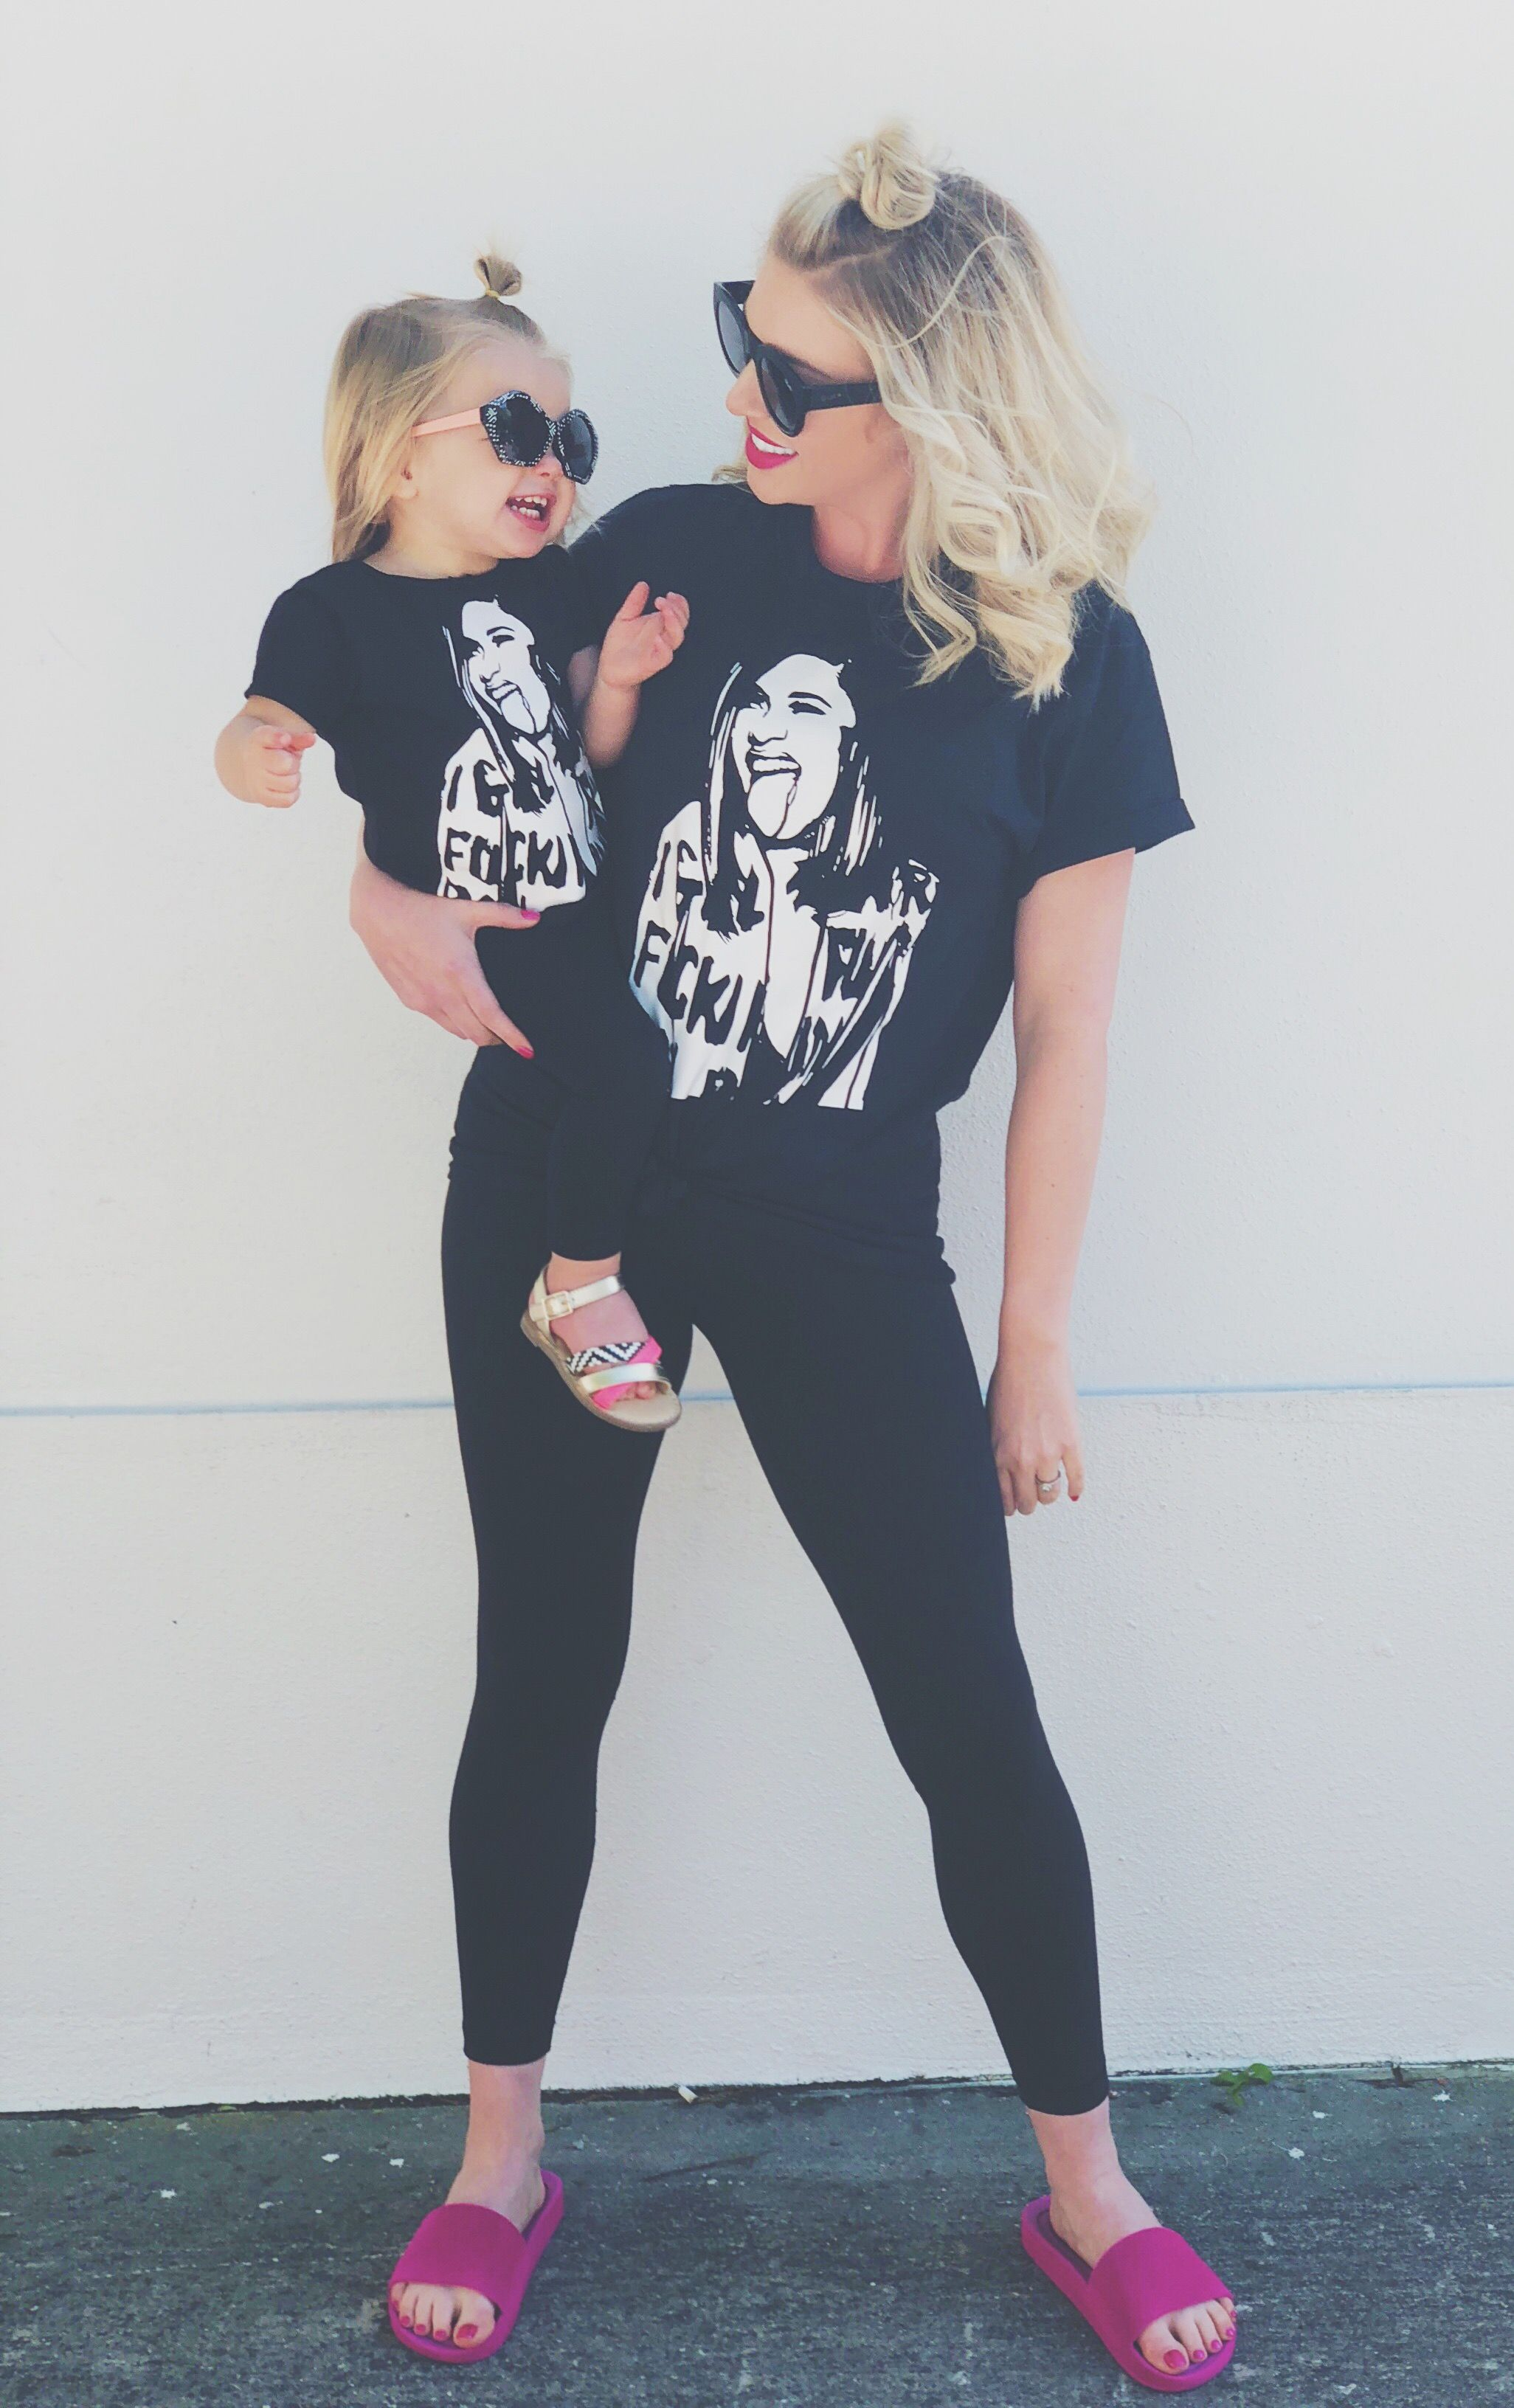 eedd10368a6 Mommy and me fashion style inspo matching Cardi B T-shirts   evy bee ...